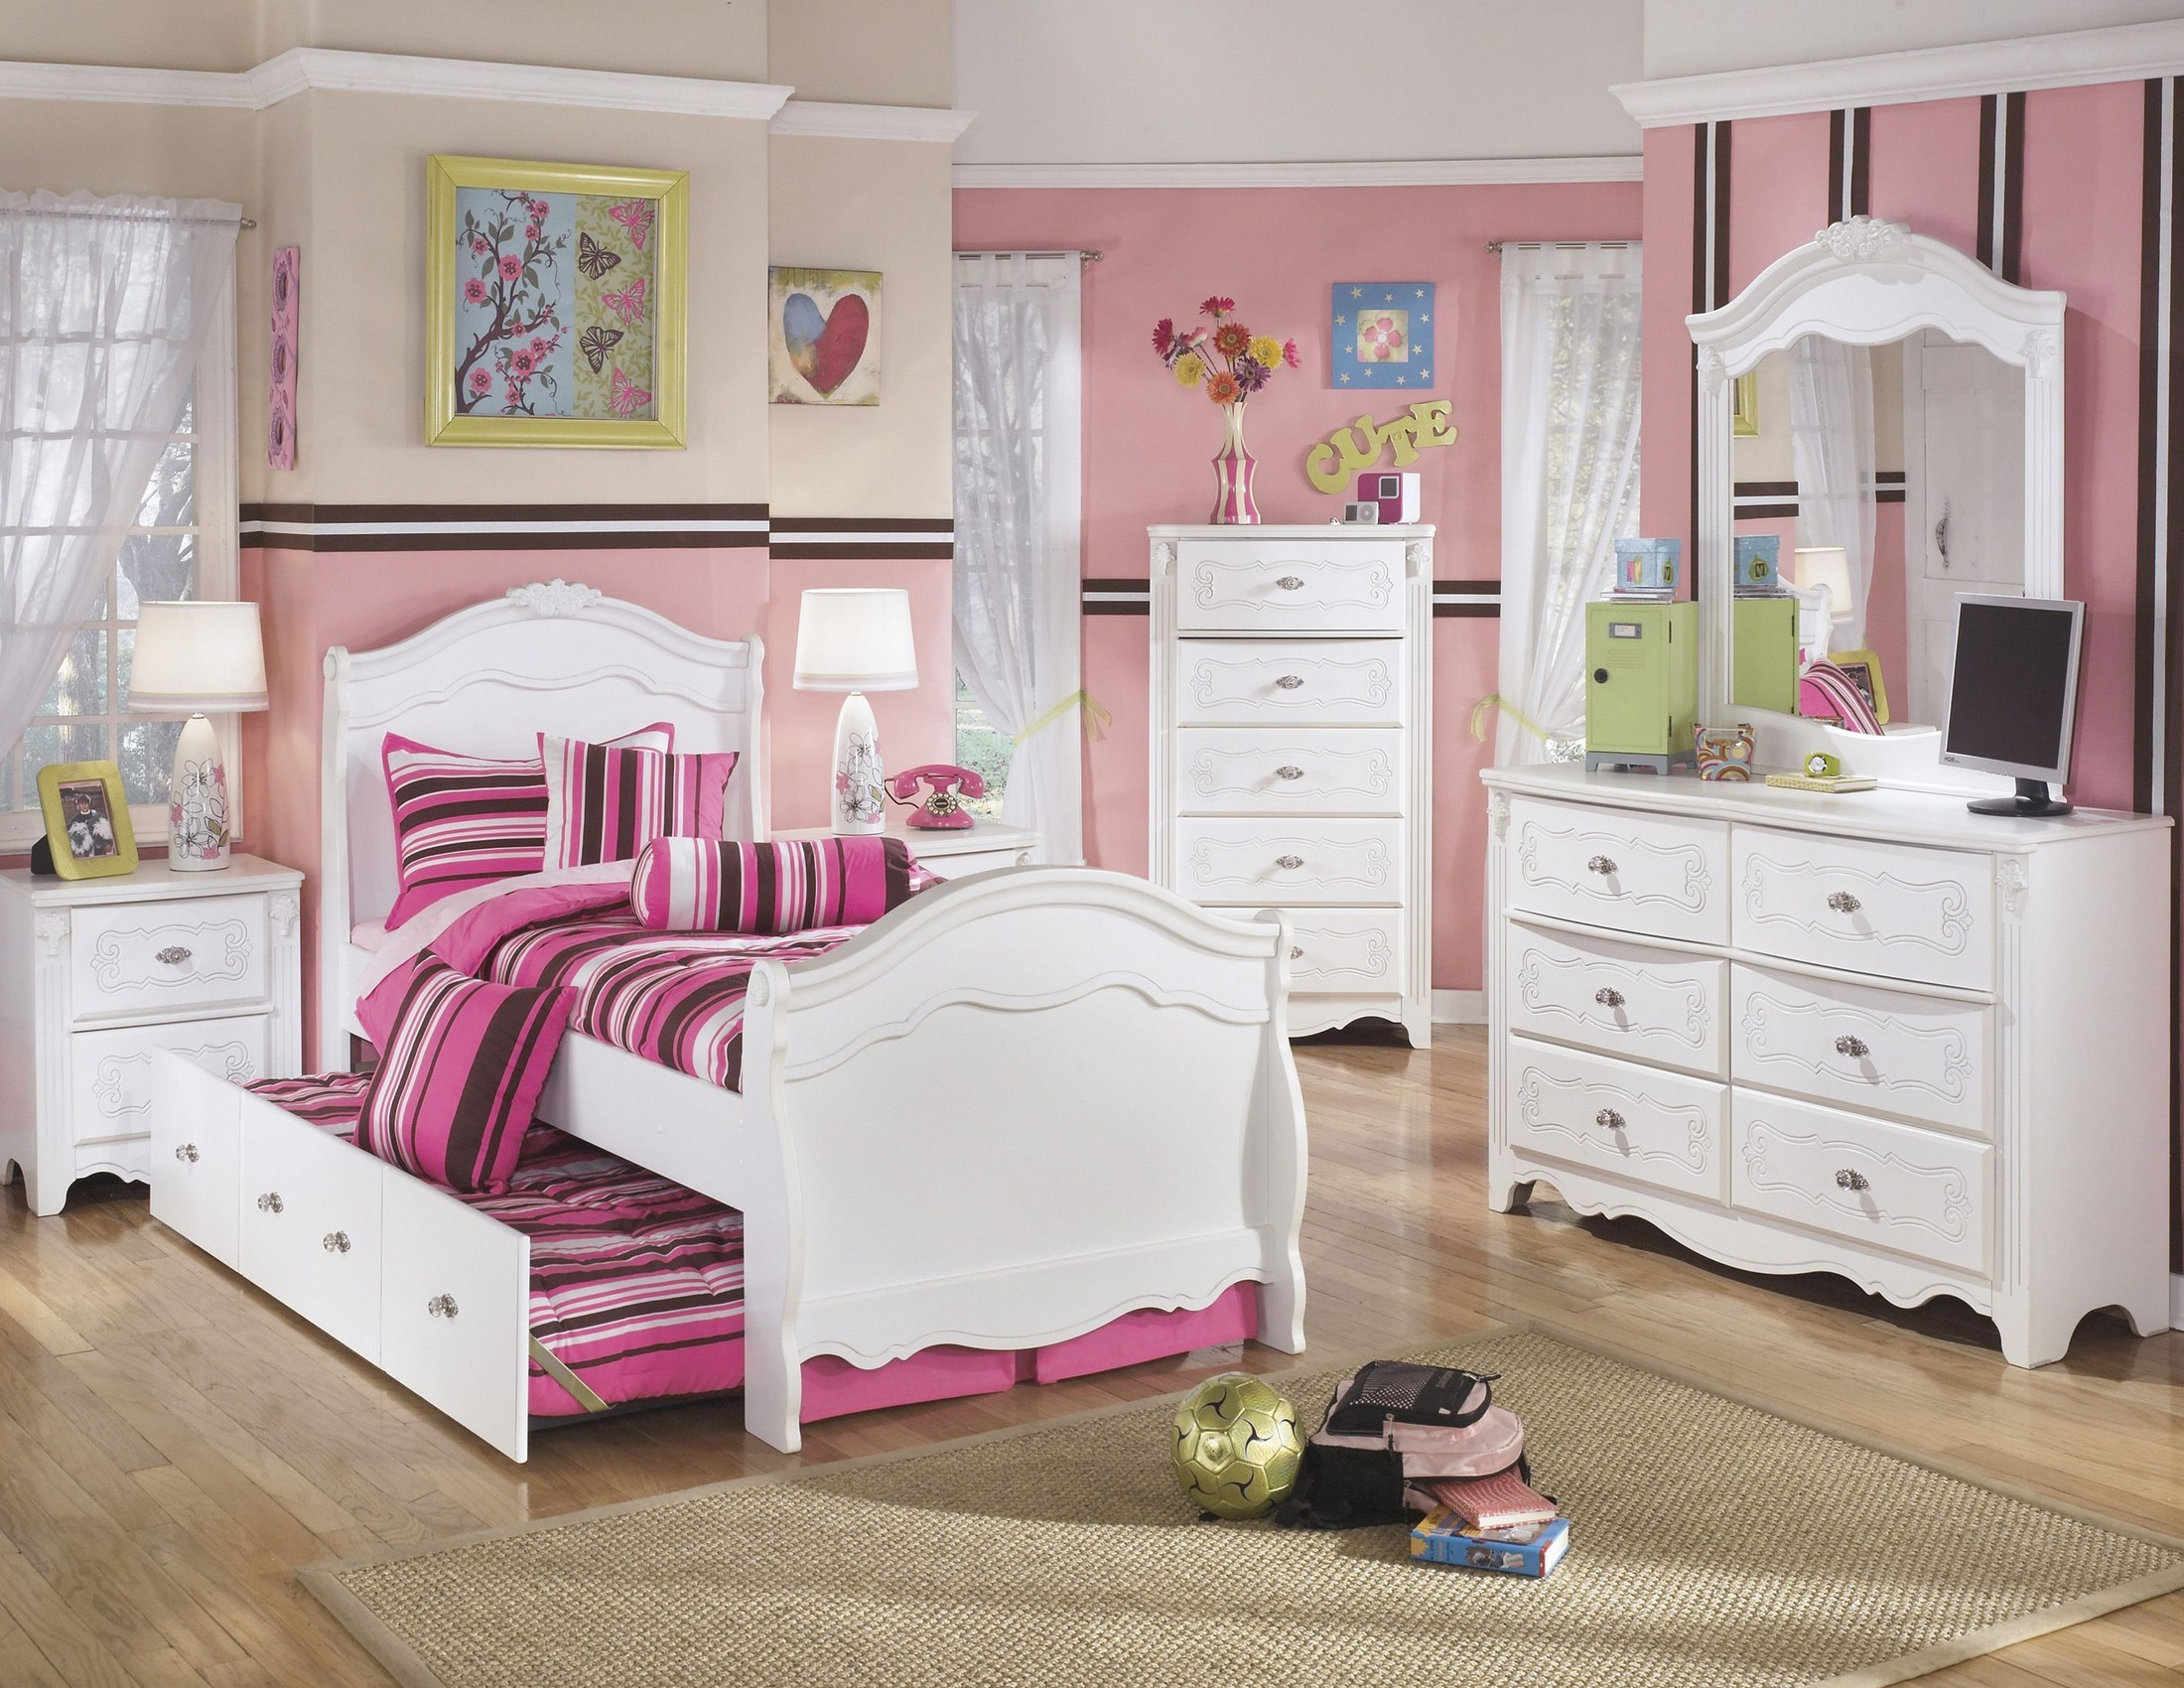 Exquisite Sleigh Trundle Bedroom Set from Ashley | Coleman Furniture